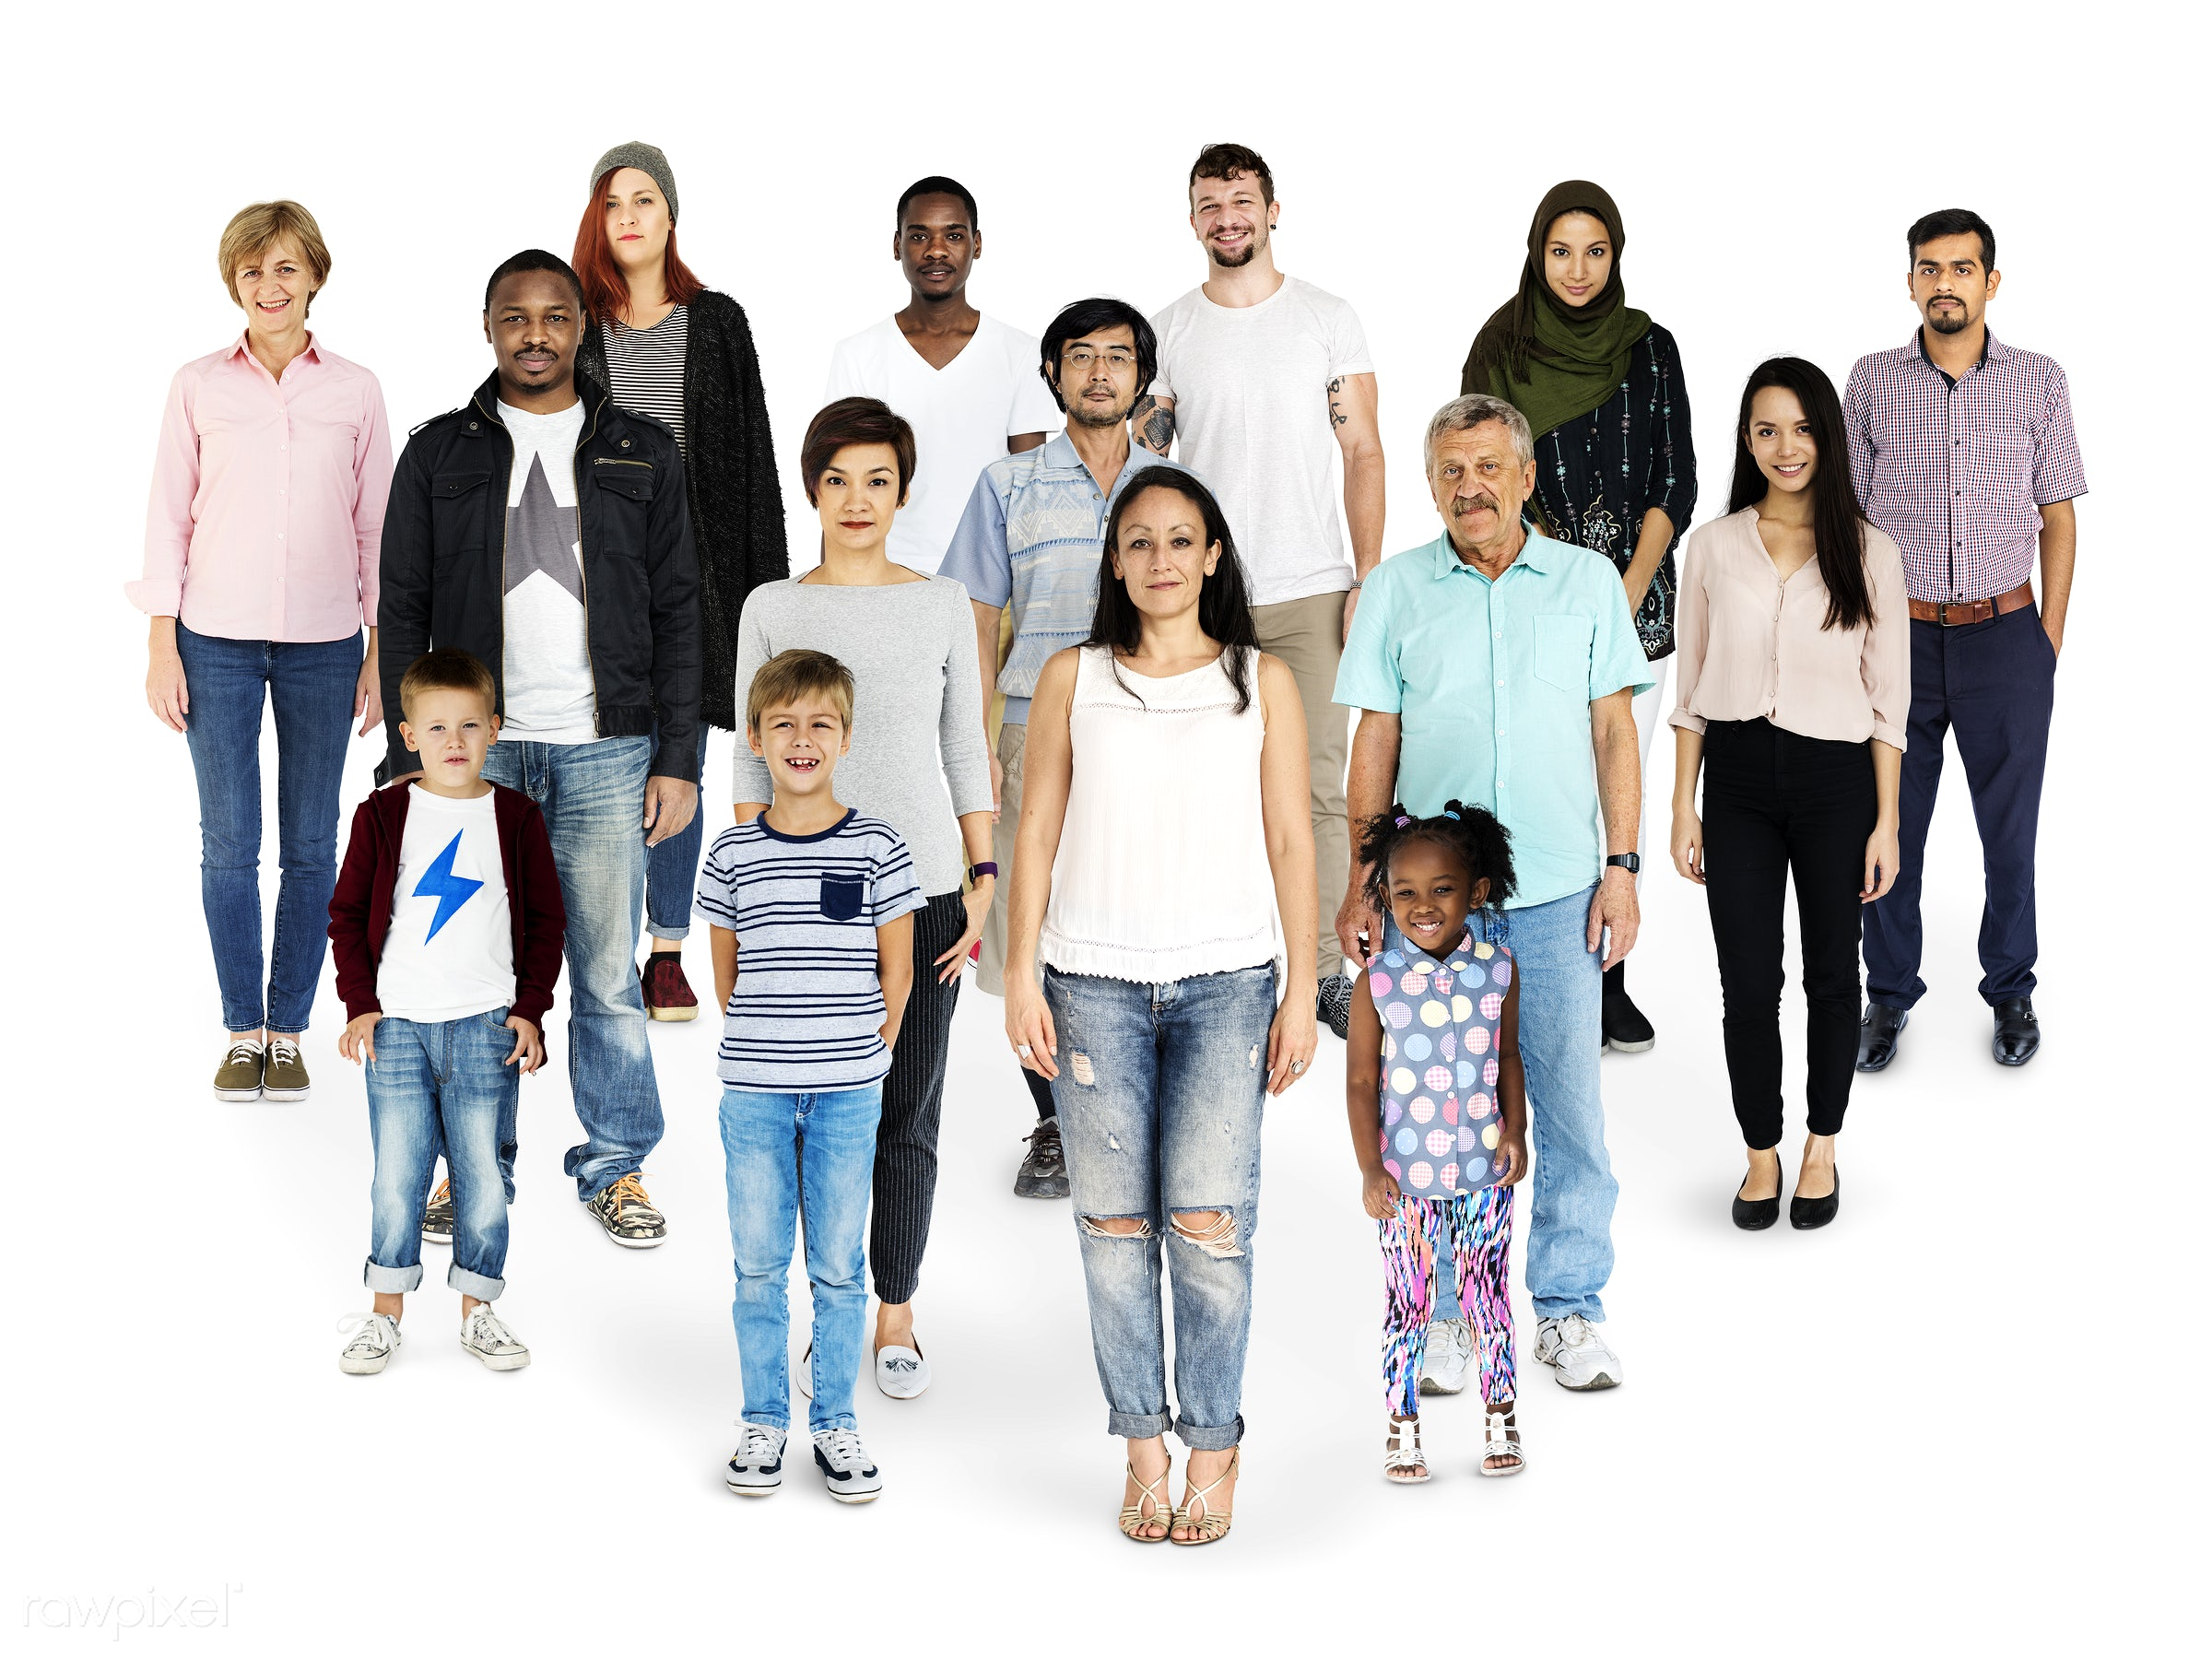 Diverse people set - gentlemen, studio, person, diverse, set, children, little, collection, people, together, attraction,...